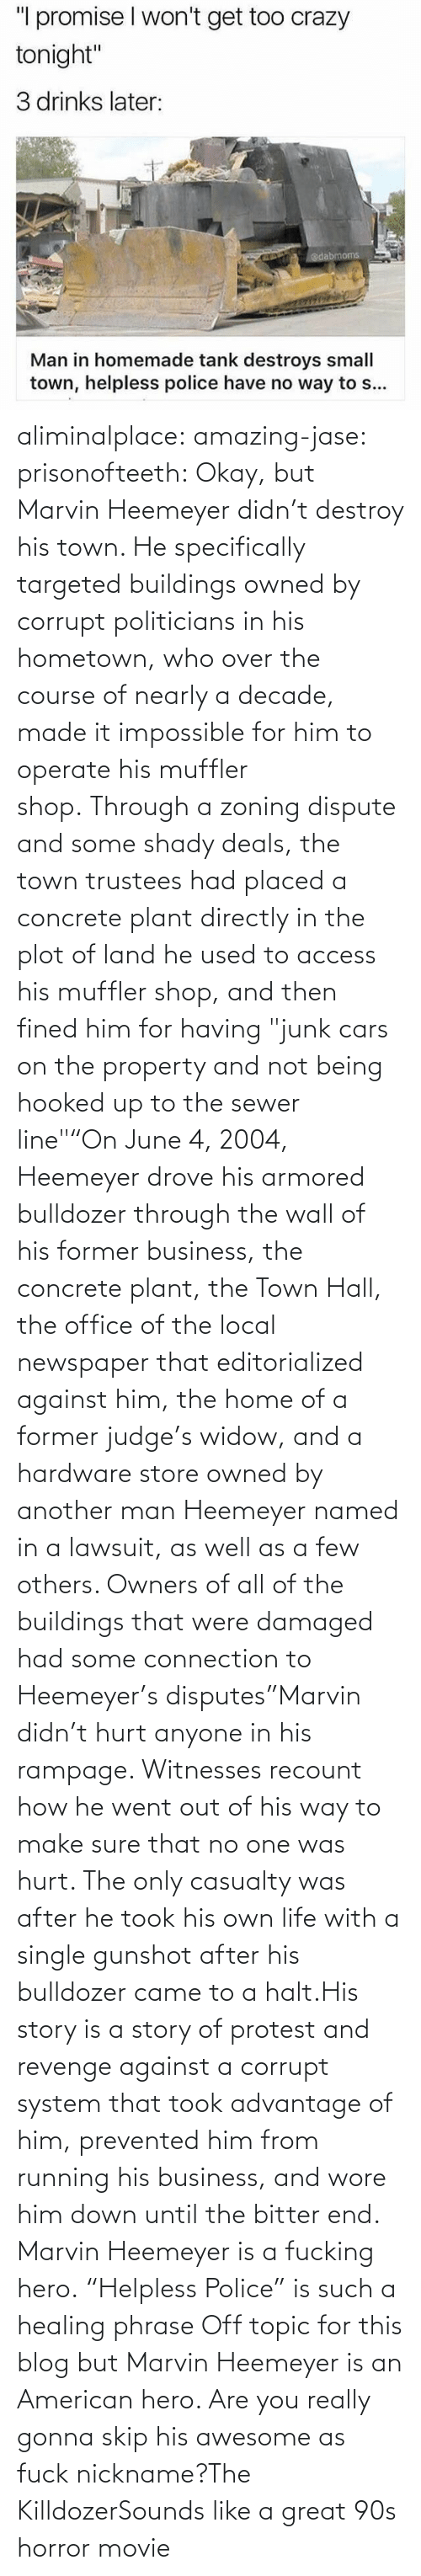 "Didnt: aliminalplace: amazing-jase:  prisonofteeth: Okay, but Marvin Heemeyer didn't destroy his town. He specifically targeted buildings owned by corrupt politicians in his hometown, who over the course of nearly a decade, made it impossible for him to operate his muffler shop. Through a zoning dispute and some shady deals, the town trustees had placed a concrete plant directly in the plot of land he used to access his muffler shop, and then fined him for having ""junk cars on the property and not being hooked up to the sewer line""""On June 4, 2004, Heemeyer drove his armored bulldozer through the wall of his former business, the concrete plant, the Town Hall, the office of the local newspaper that editorialized against him, the home of a former judge's widow, and a hardware store owned by another man Heemeyer named in a lawsuit, as well as a few others. Owners of all of the buildings that were damaged had some connection to Heemeyer's disputes""Marvin didn't hurt anyone in his rampage. Witnesses recount how he went out of his way to make sure that no one was hurt. The only casualty was after he took his own life with a single gunshot after his bulldozer came to a halt.His story is a story of protest and revenge against a corrupt system that took advantage of him, prevented him from running his business, and wore him down until the bitter end. Marvin Heemeyer is a fucking hero. ""Helpless Police"" is such a healing phrase    Off topic for this blog but Marvin Heemeyer is an American hero.     Are you really gonna skip his awesome as fuck nickname?The KilldozerSounds like a great 90s horror movie"